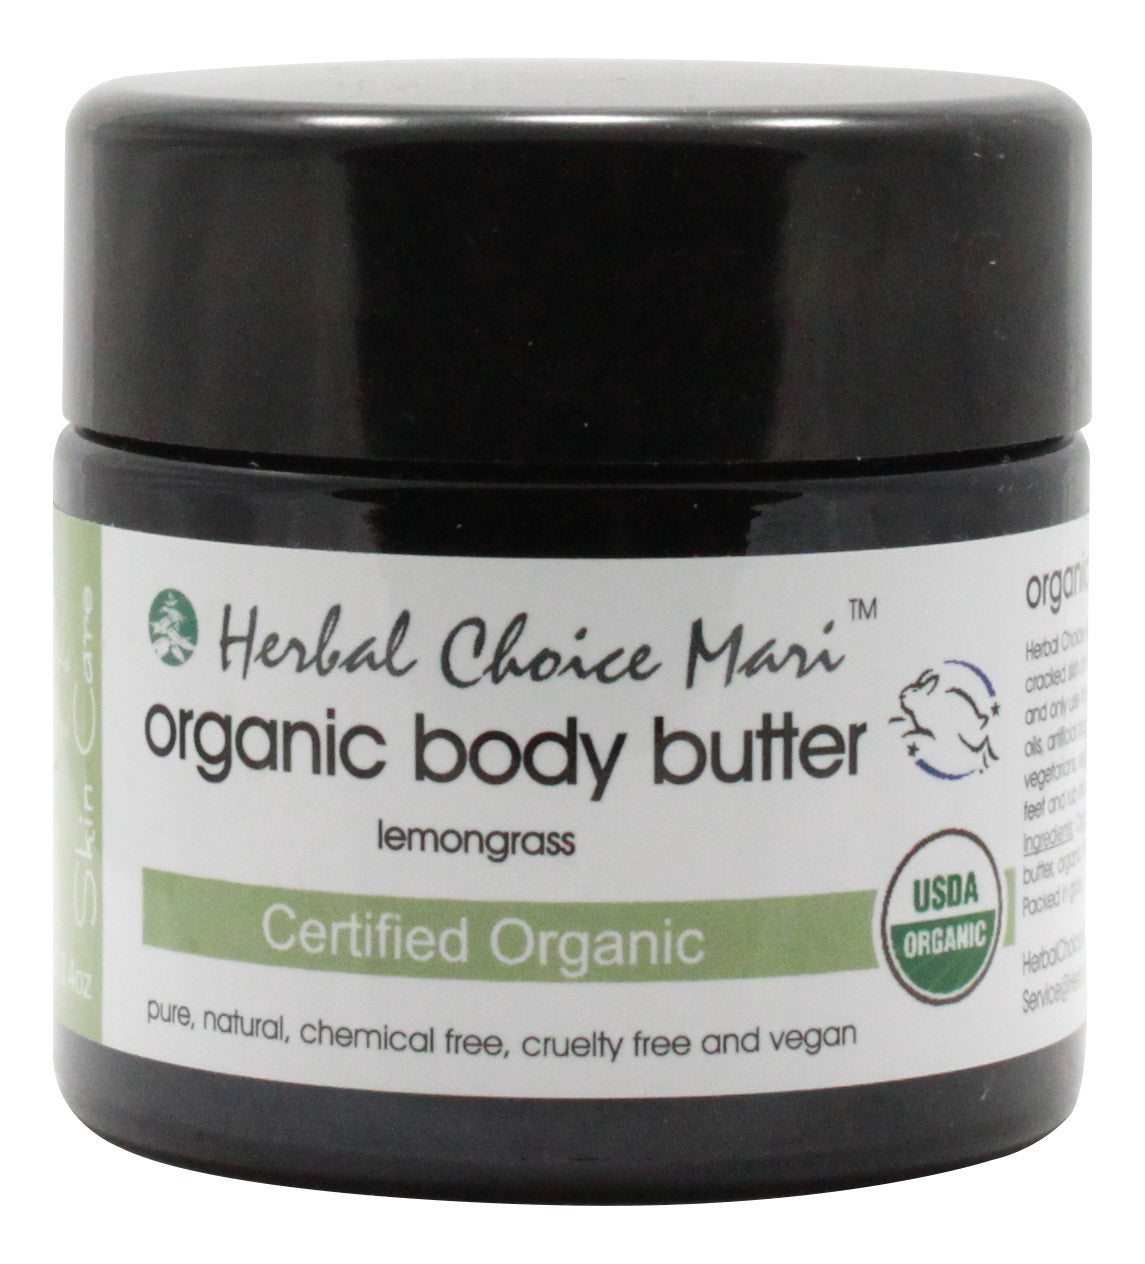 Organic Body Butter - Lemongrass - 3.4 oz Jar - Front